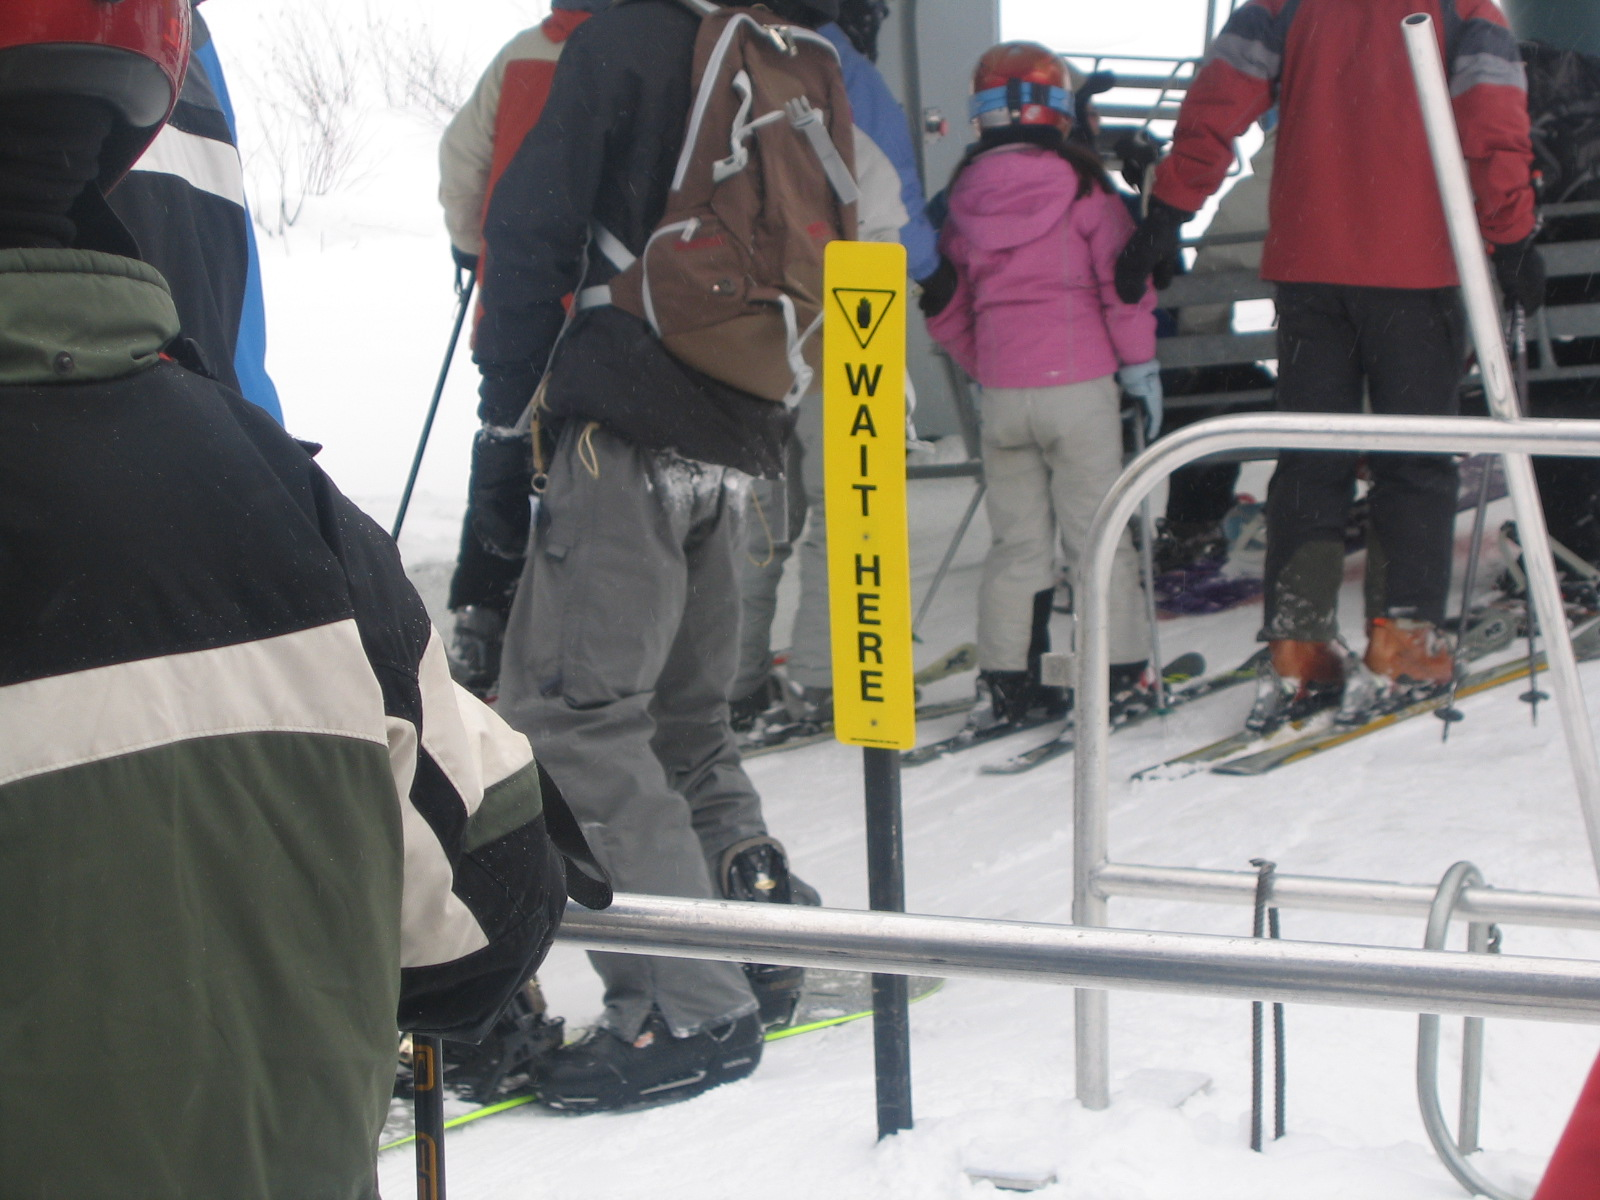 Wait Here Ski Lift Sign